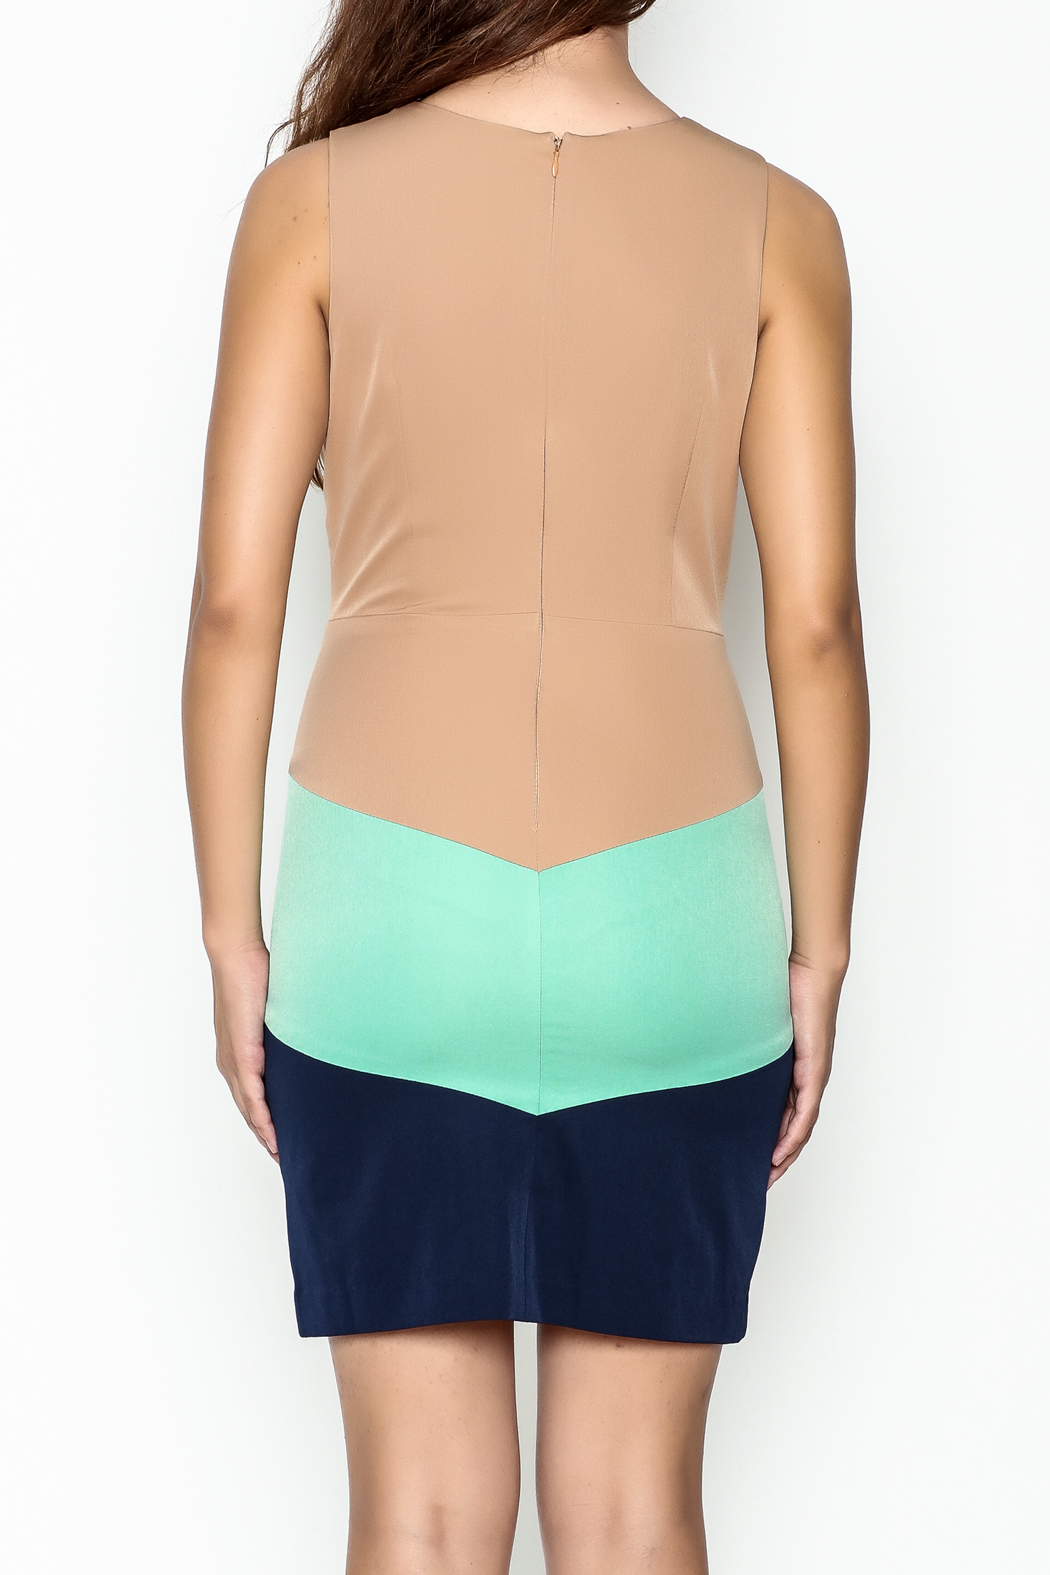 C. Luce Fall Colorblock Dress - Back Cropped Image